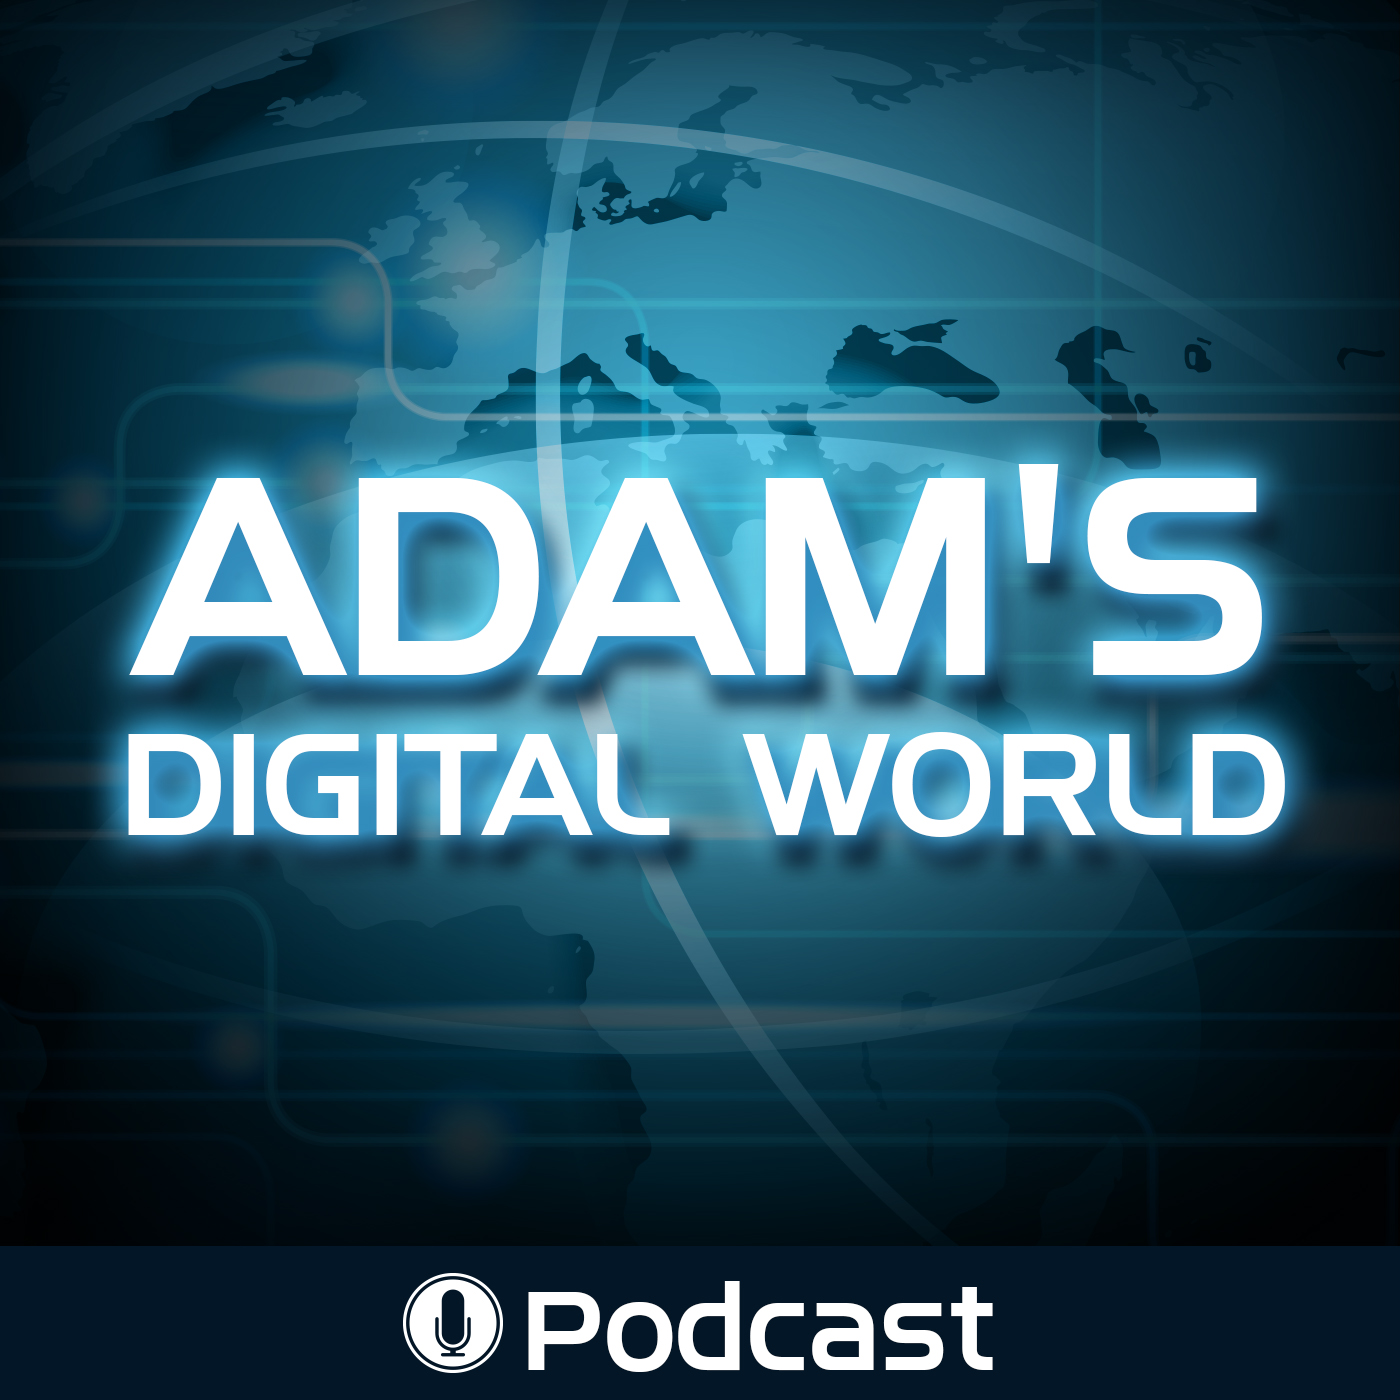 Adam's Digital World